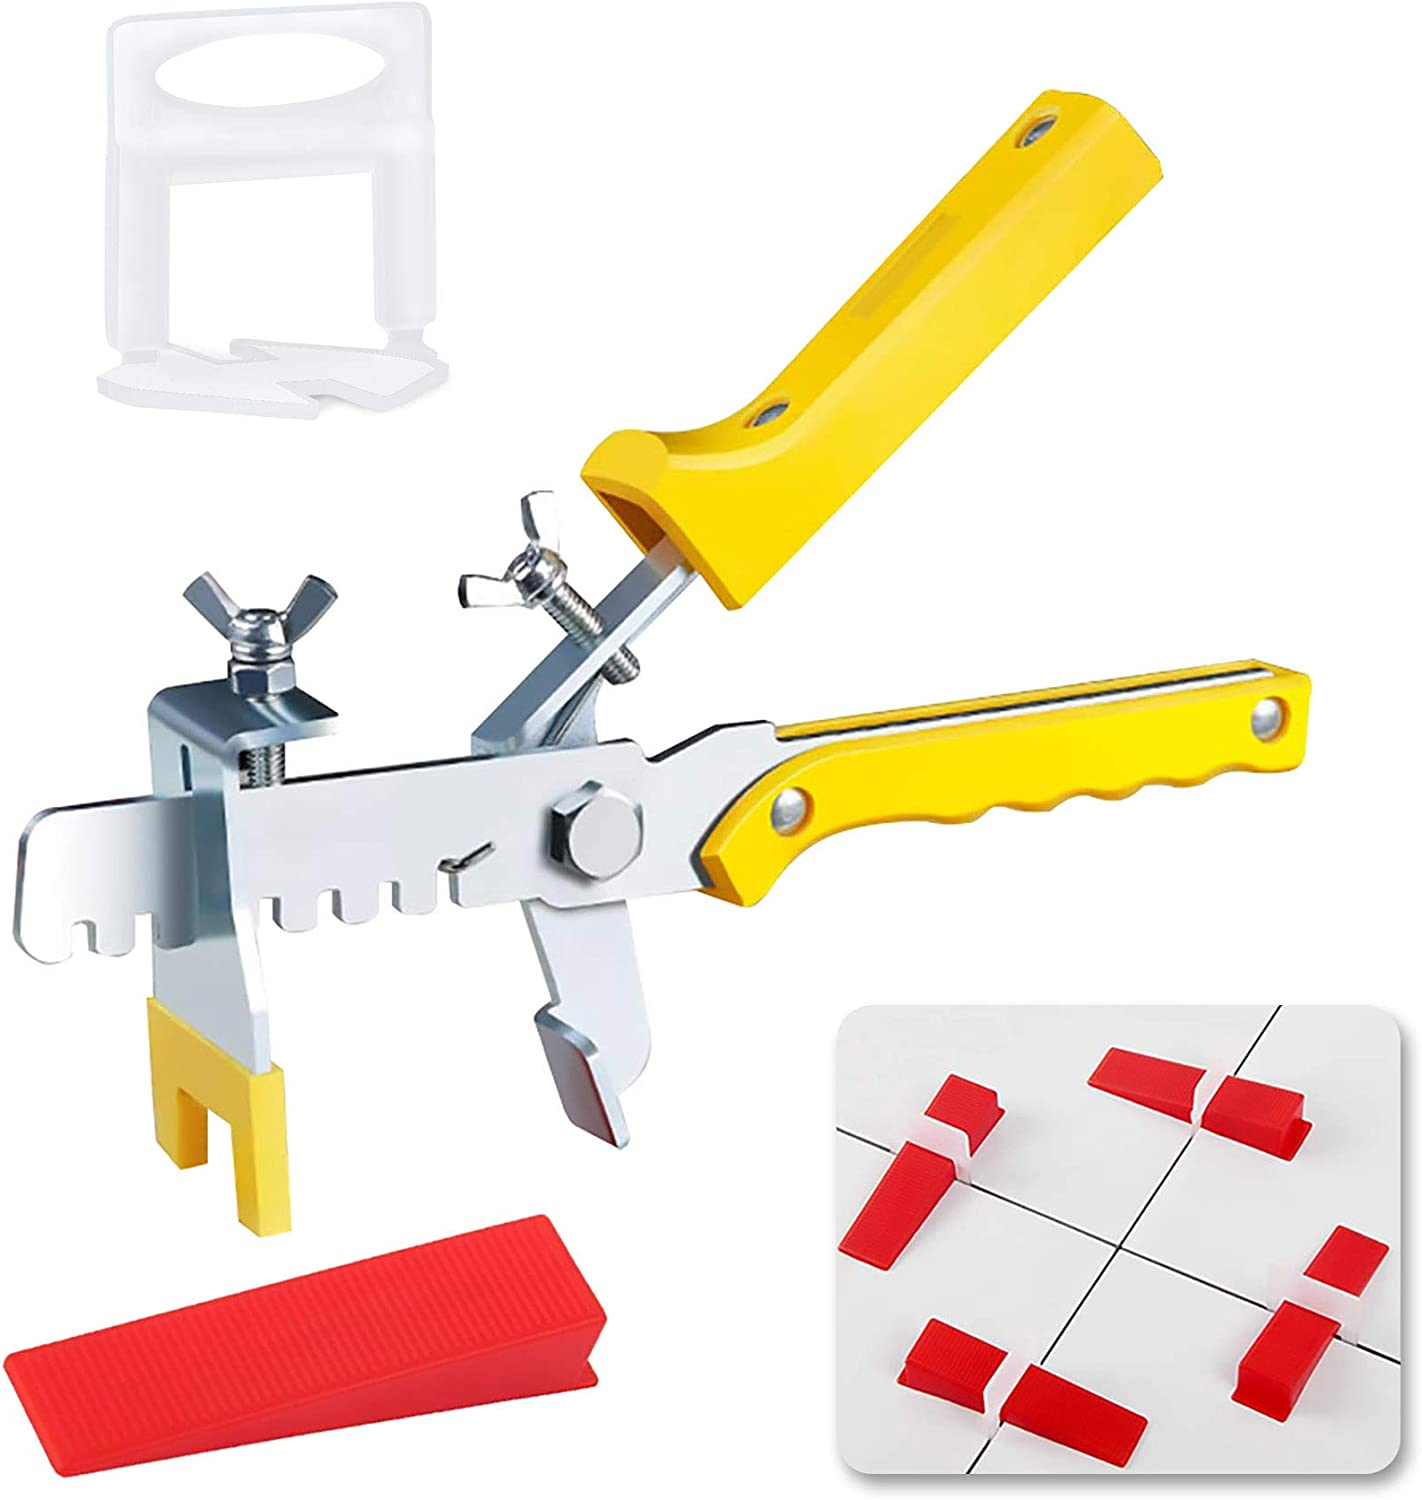 """Tile Leveling System, Premium 300 pcs 1/8"""" Tile Spacers Clips, 100 pcs Reusable Wedges and 1 pc Floor Tiles Pliers for Living Room Shower Floor/Wall Base Tile Leveler Tools for Installation - -"""